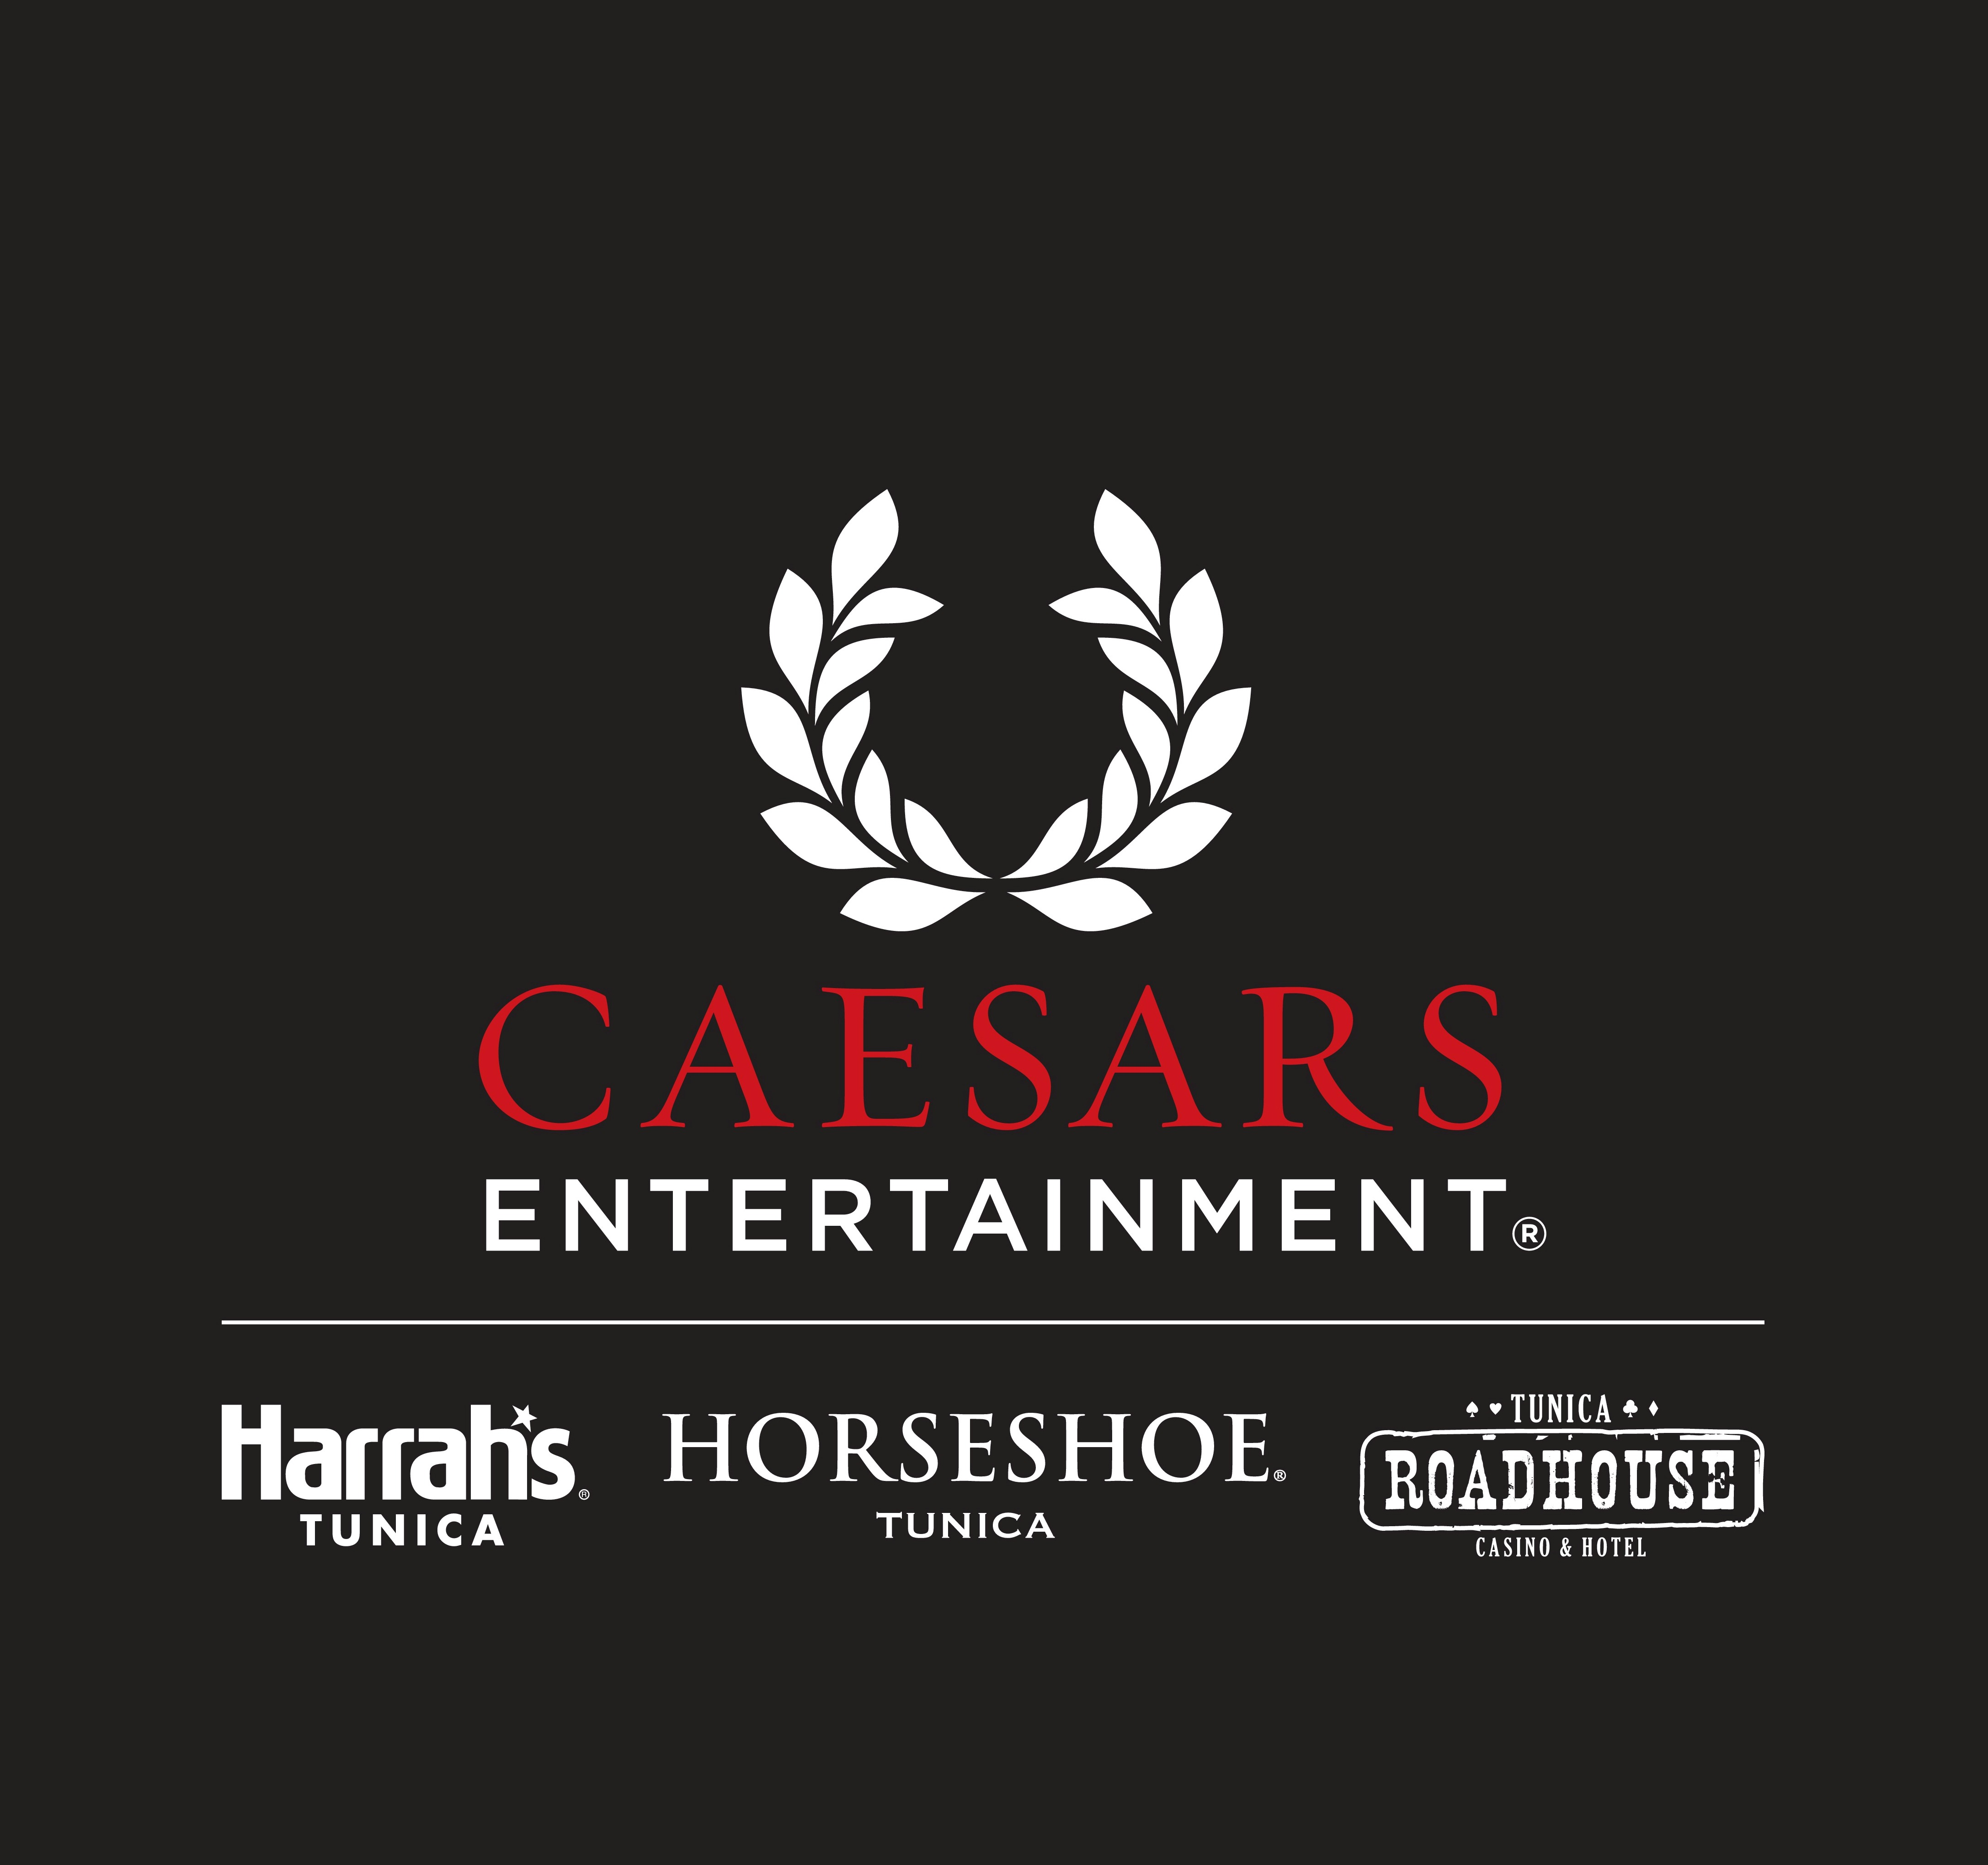 harrah s entertainment inc rewarding our people This article is a case study of hiring policies and reward system at harrah's entertainment harrah's want to install an incentive pay plan that instill competitive spirit in the employees and competing against rival casinos as well as their own past records.